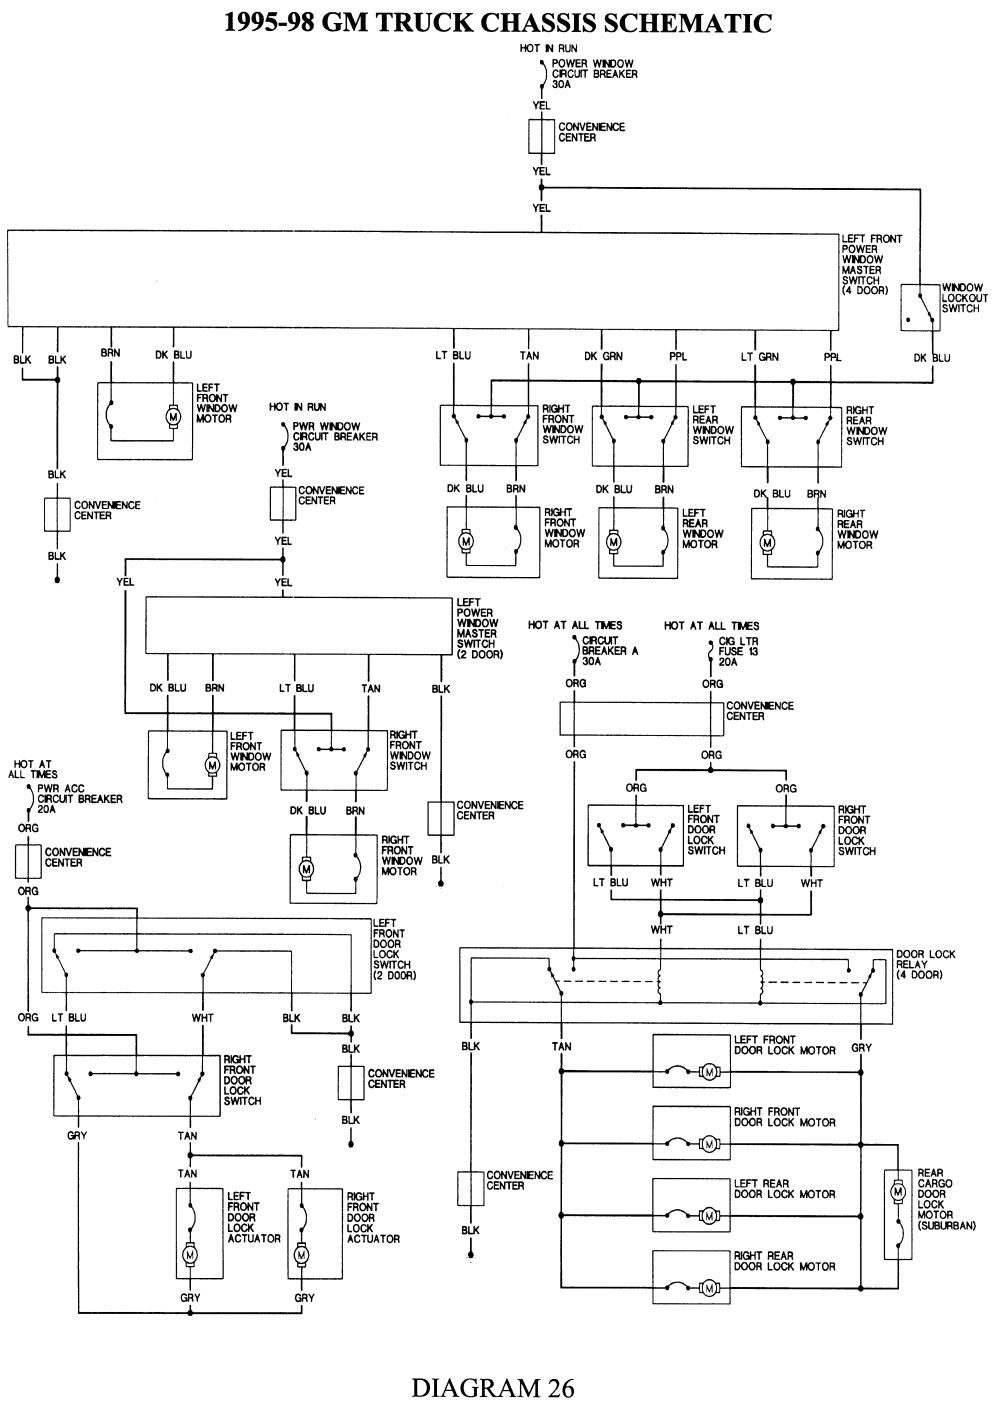 26 1994 gm truck chassis schematic click image to see an enlarged view fig